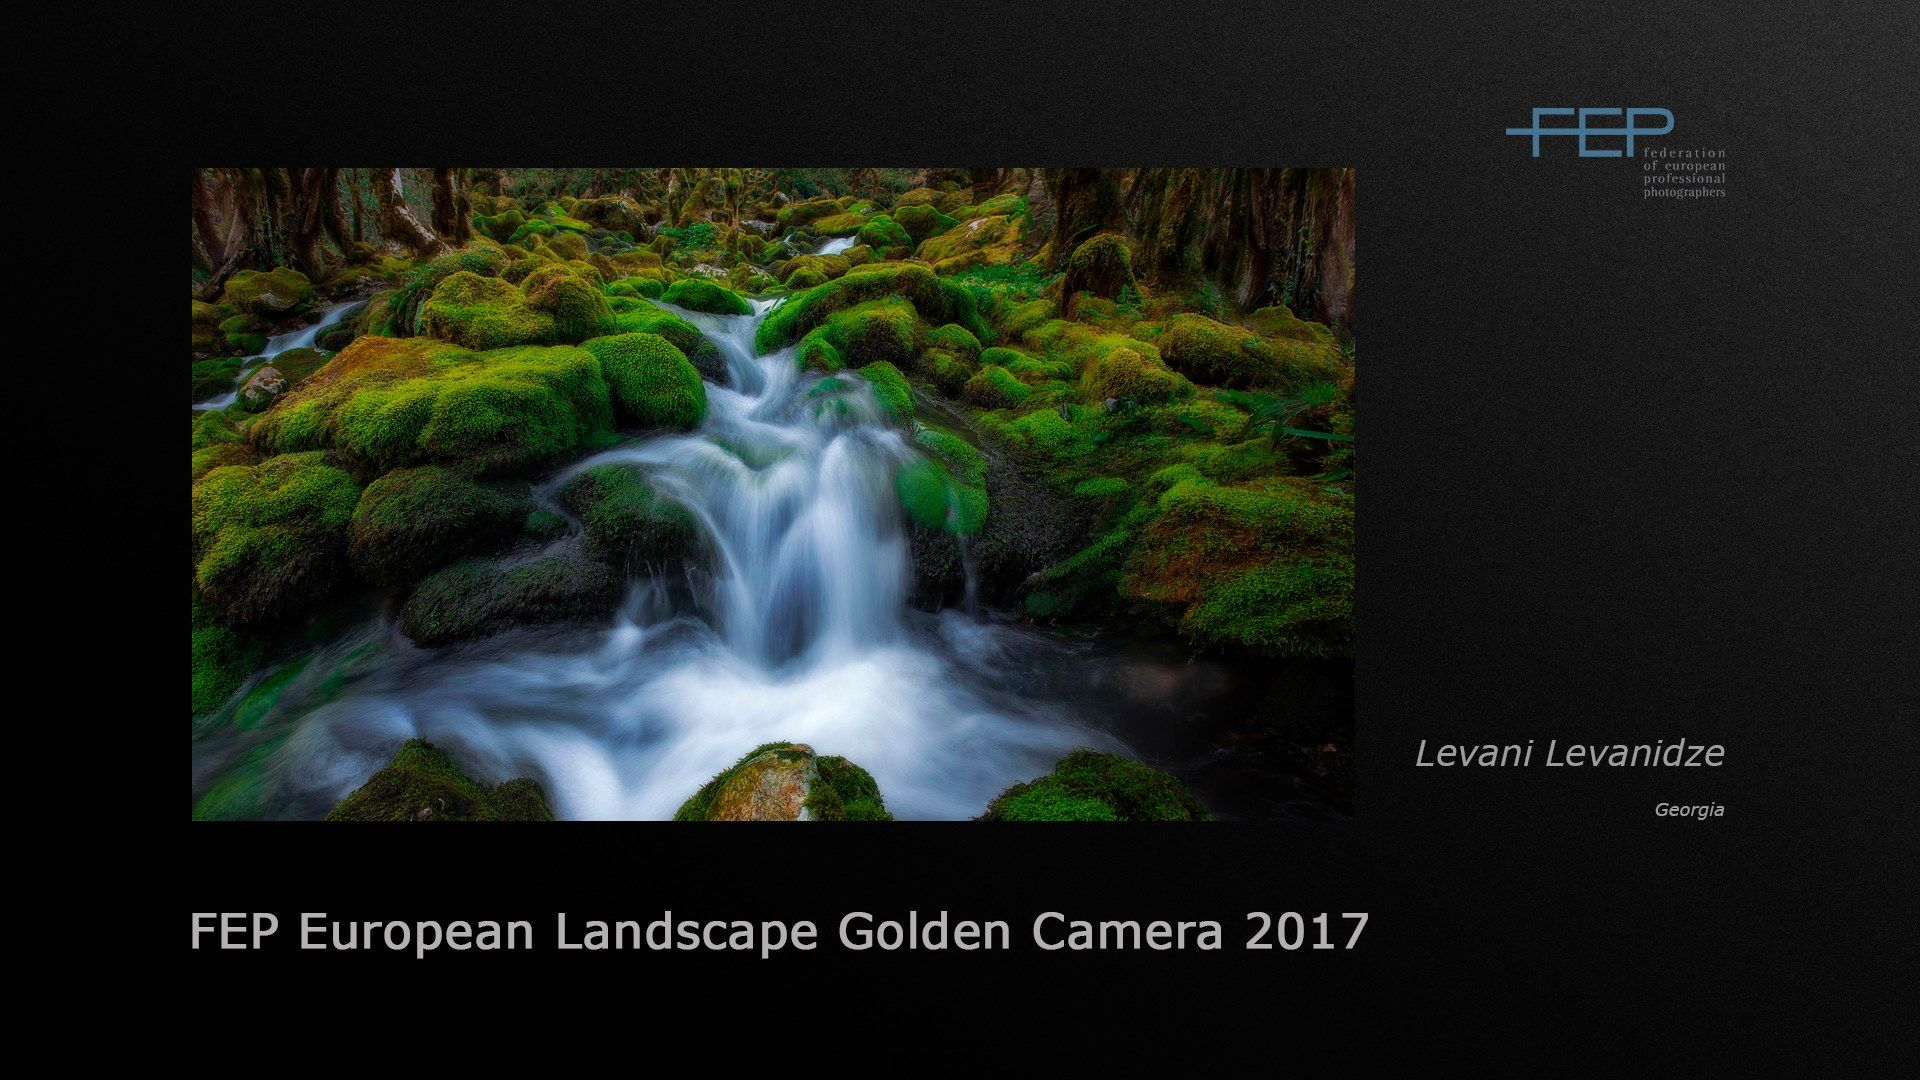 images?q=tbn:ANd9GcQh_l3eQ5xwiPy07kGEXjmjgmBKBRB7H2mRxCGhv1tFWg5c_mWT Best Of Landscape Photography Georgia @http://capturingmomentsphotography.net.info